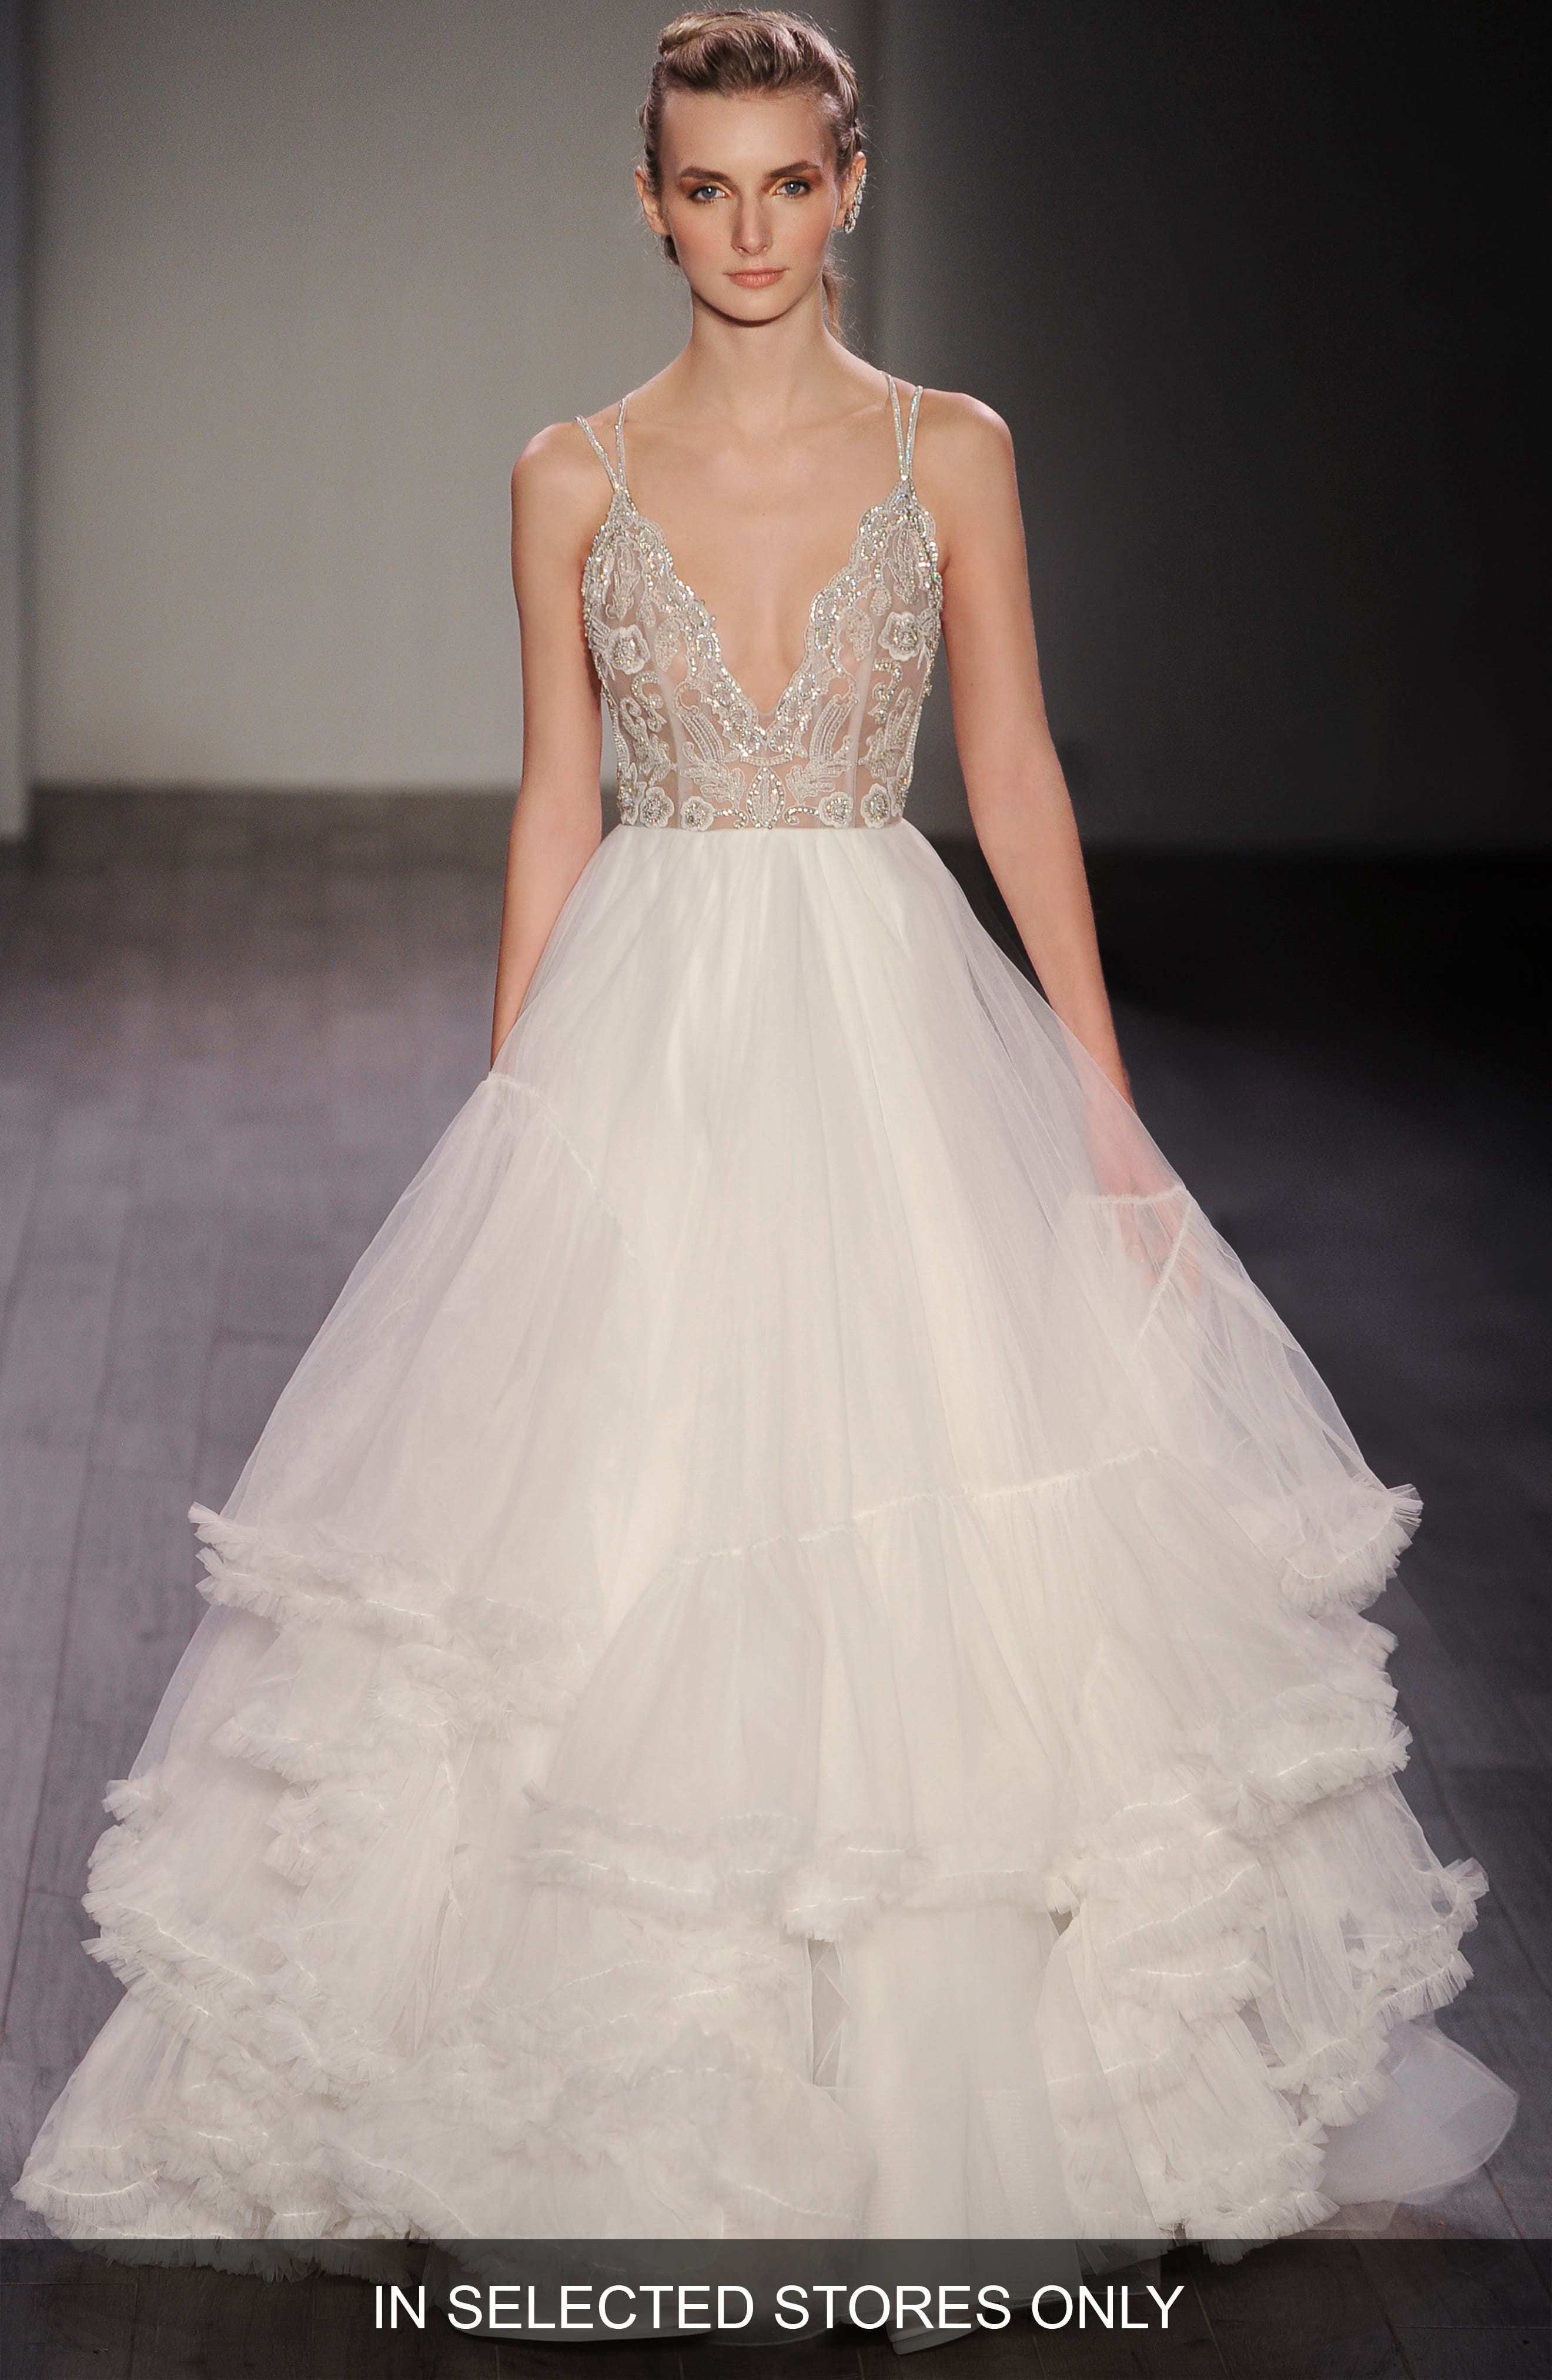 Main Image - Hayley Paige Georgie Embellished Bodice Tulle Ballgown